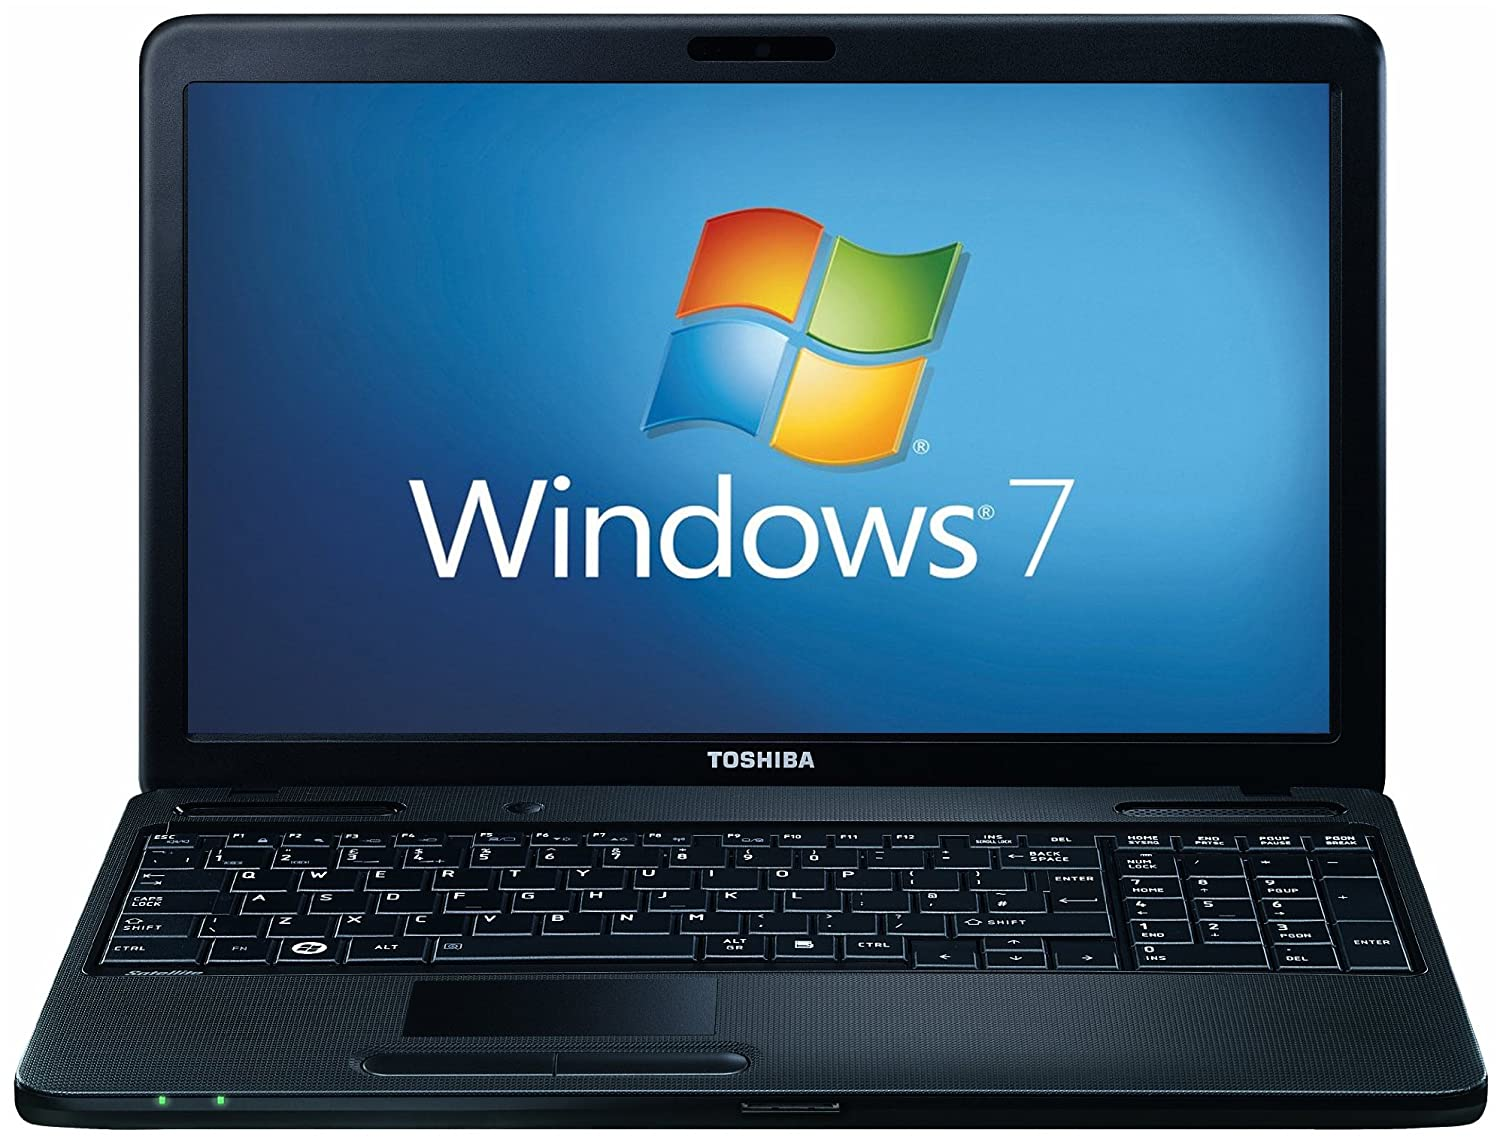 Toshiba Satellite C670 PC Health Monitor Driver Windows 7